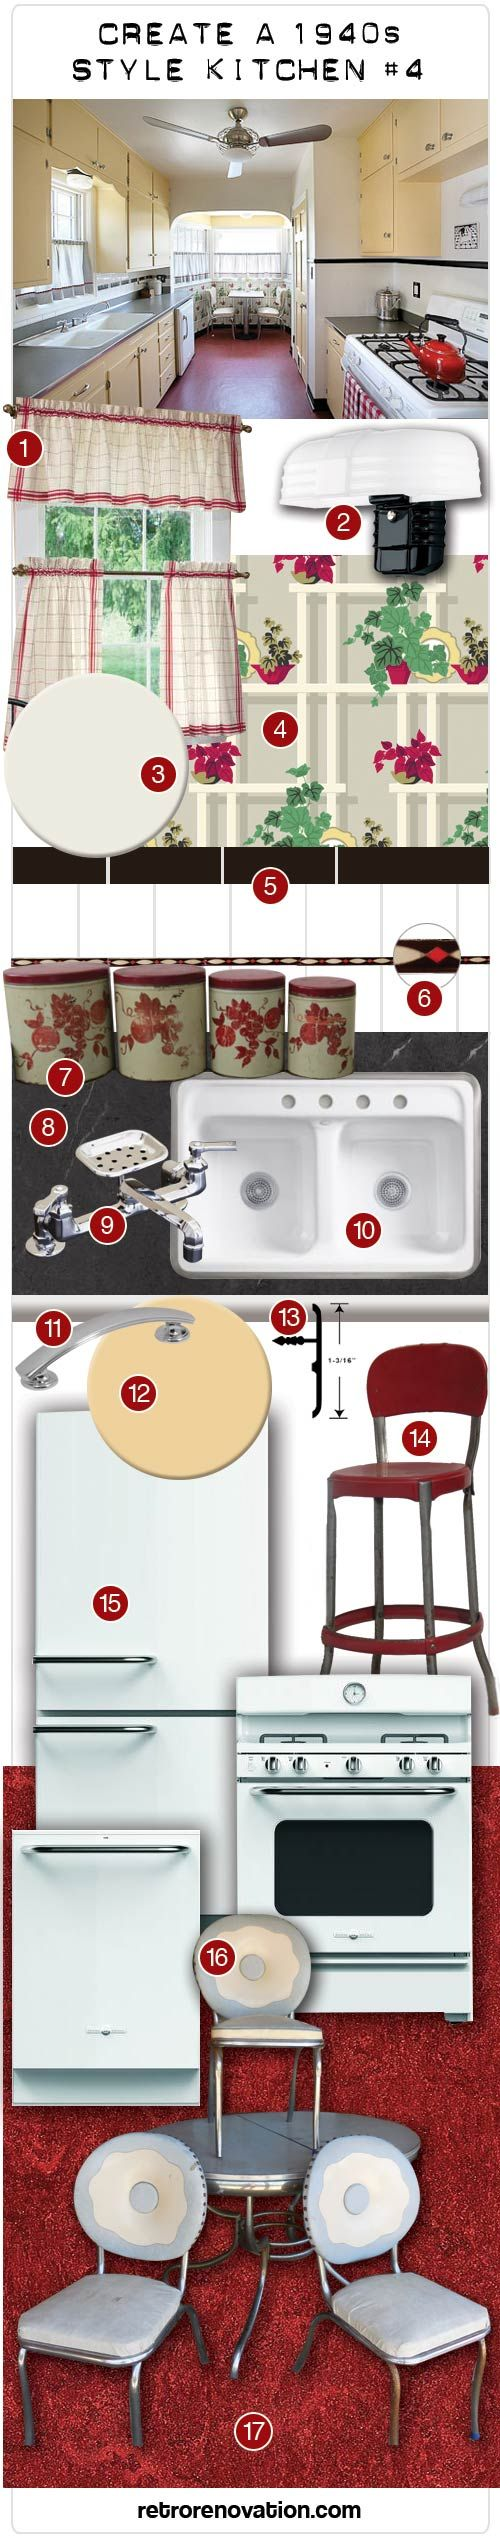 Design board to create a 1940s kitchen with yellow cabinets - Retro Renovation